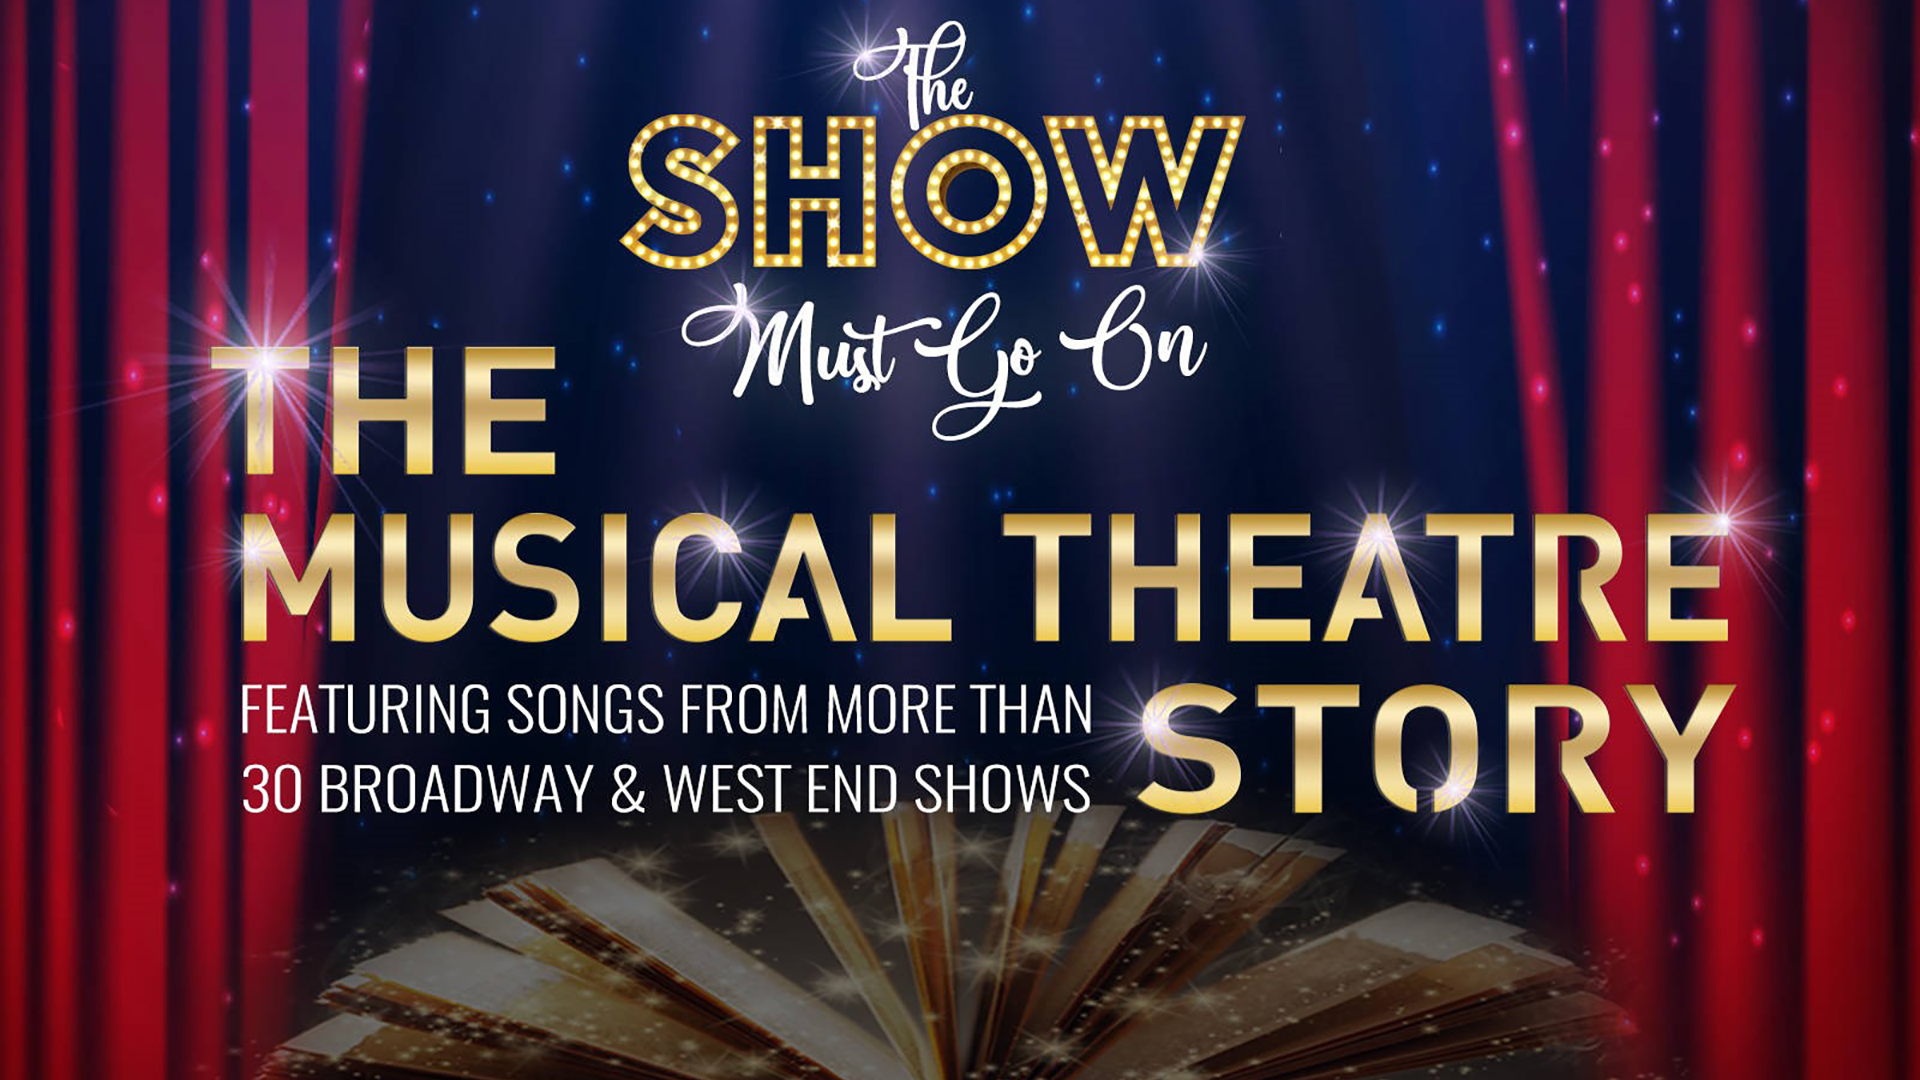 The Show Must Go On - The Musical Theatre Story